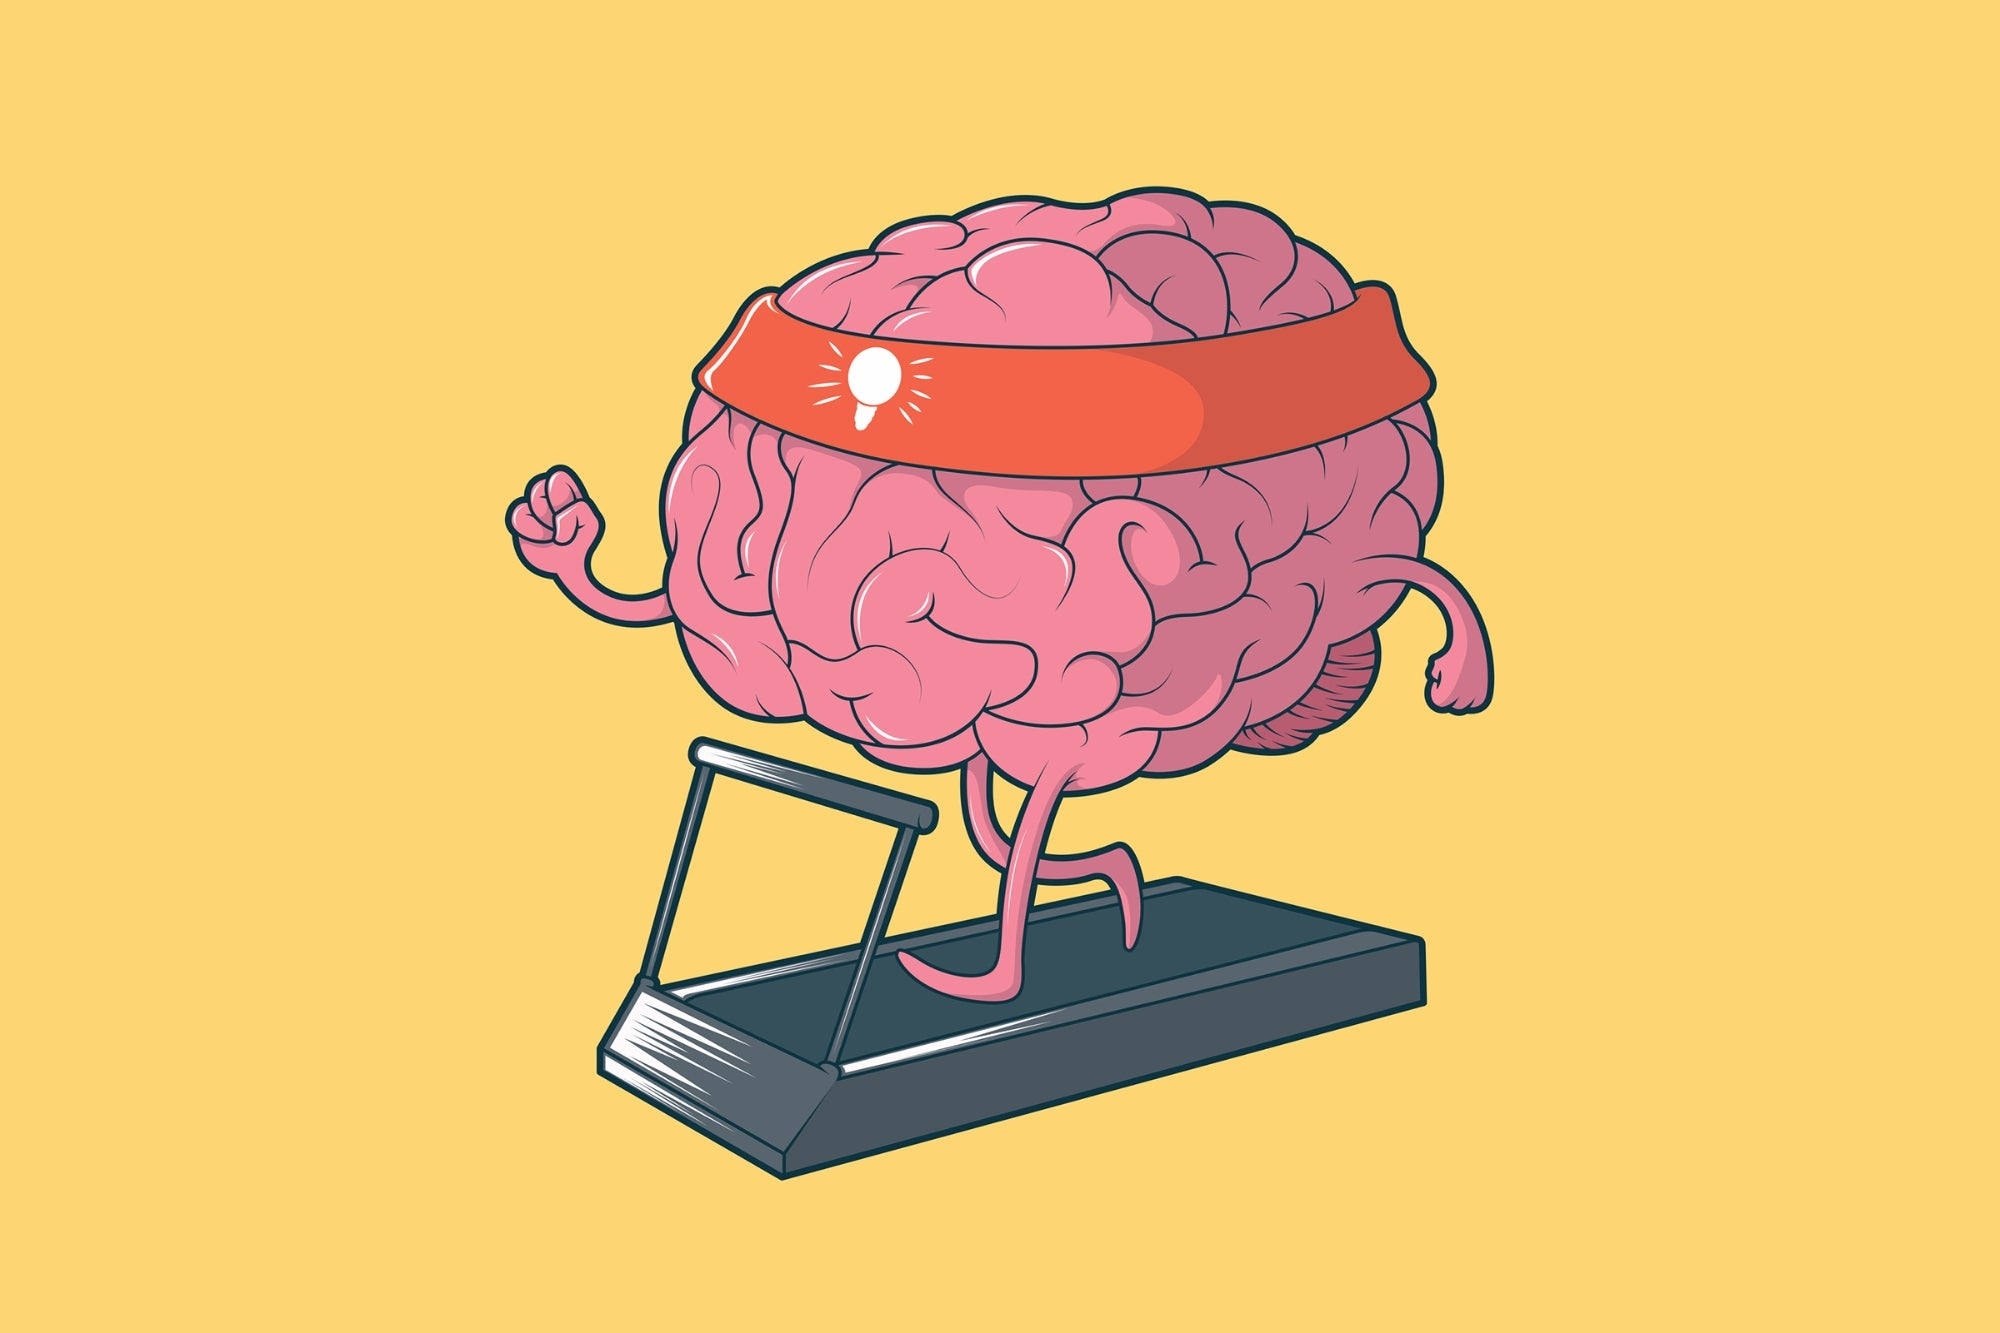 5 Proven Tips for Keeping Your Brain Active, Engaged and Improving